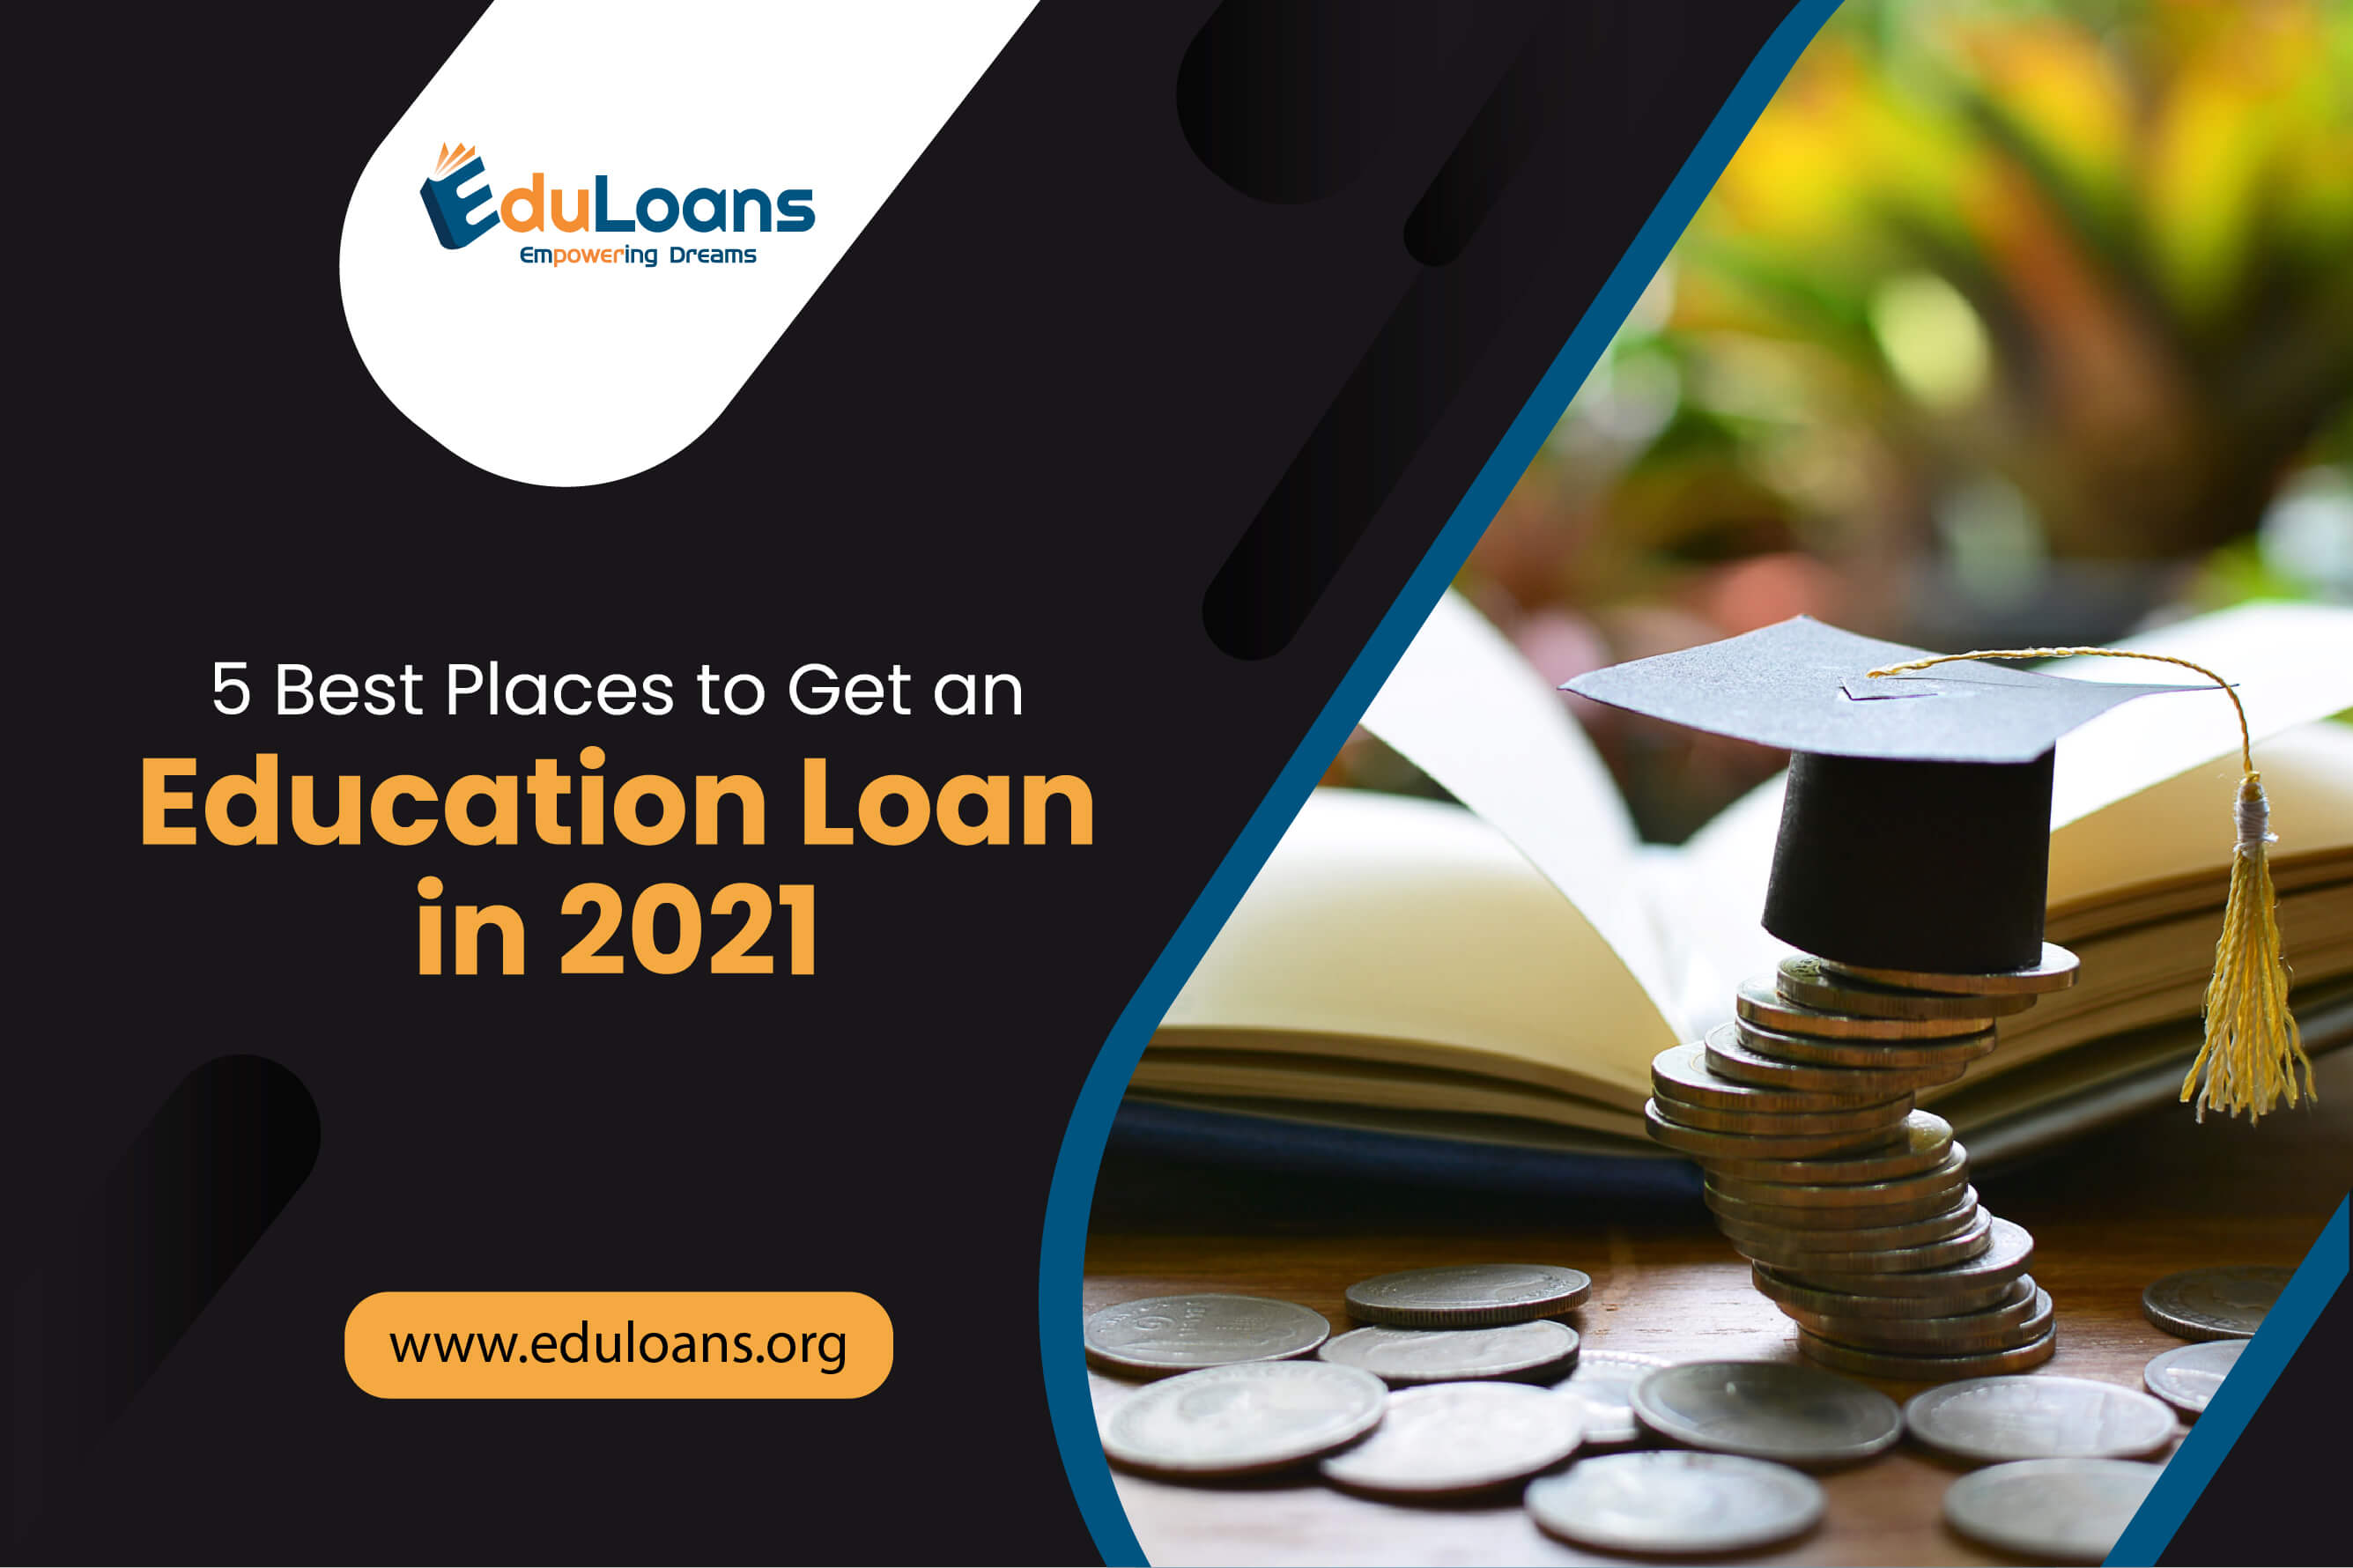 5 Best Places to Get an Education Loan in 2021